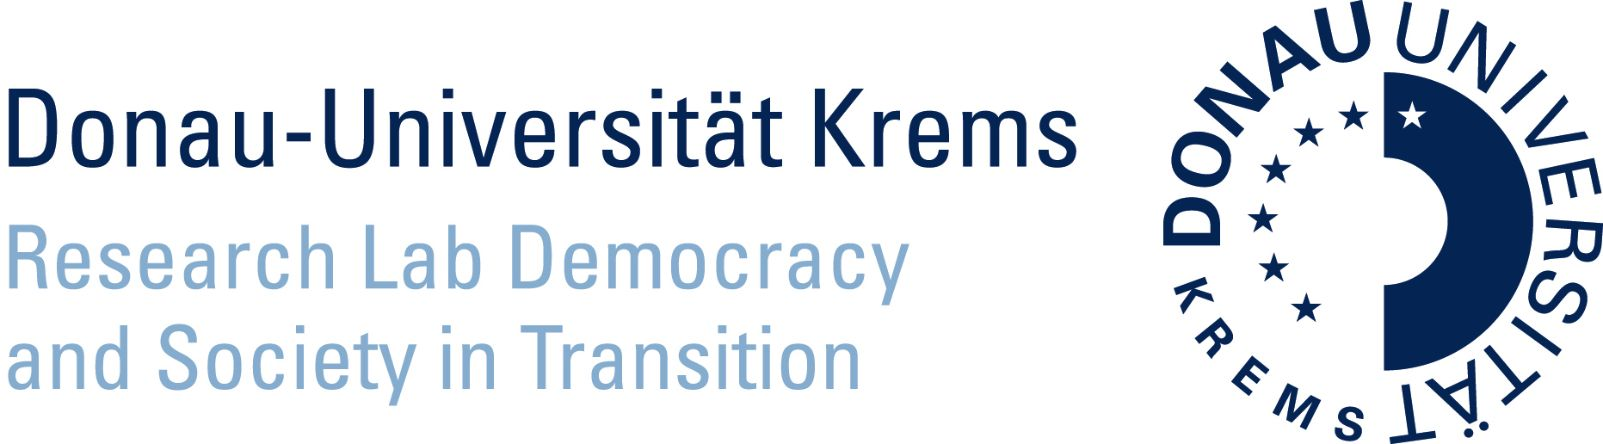 Research Lab Democracy and Society in Transition